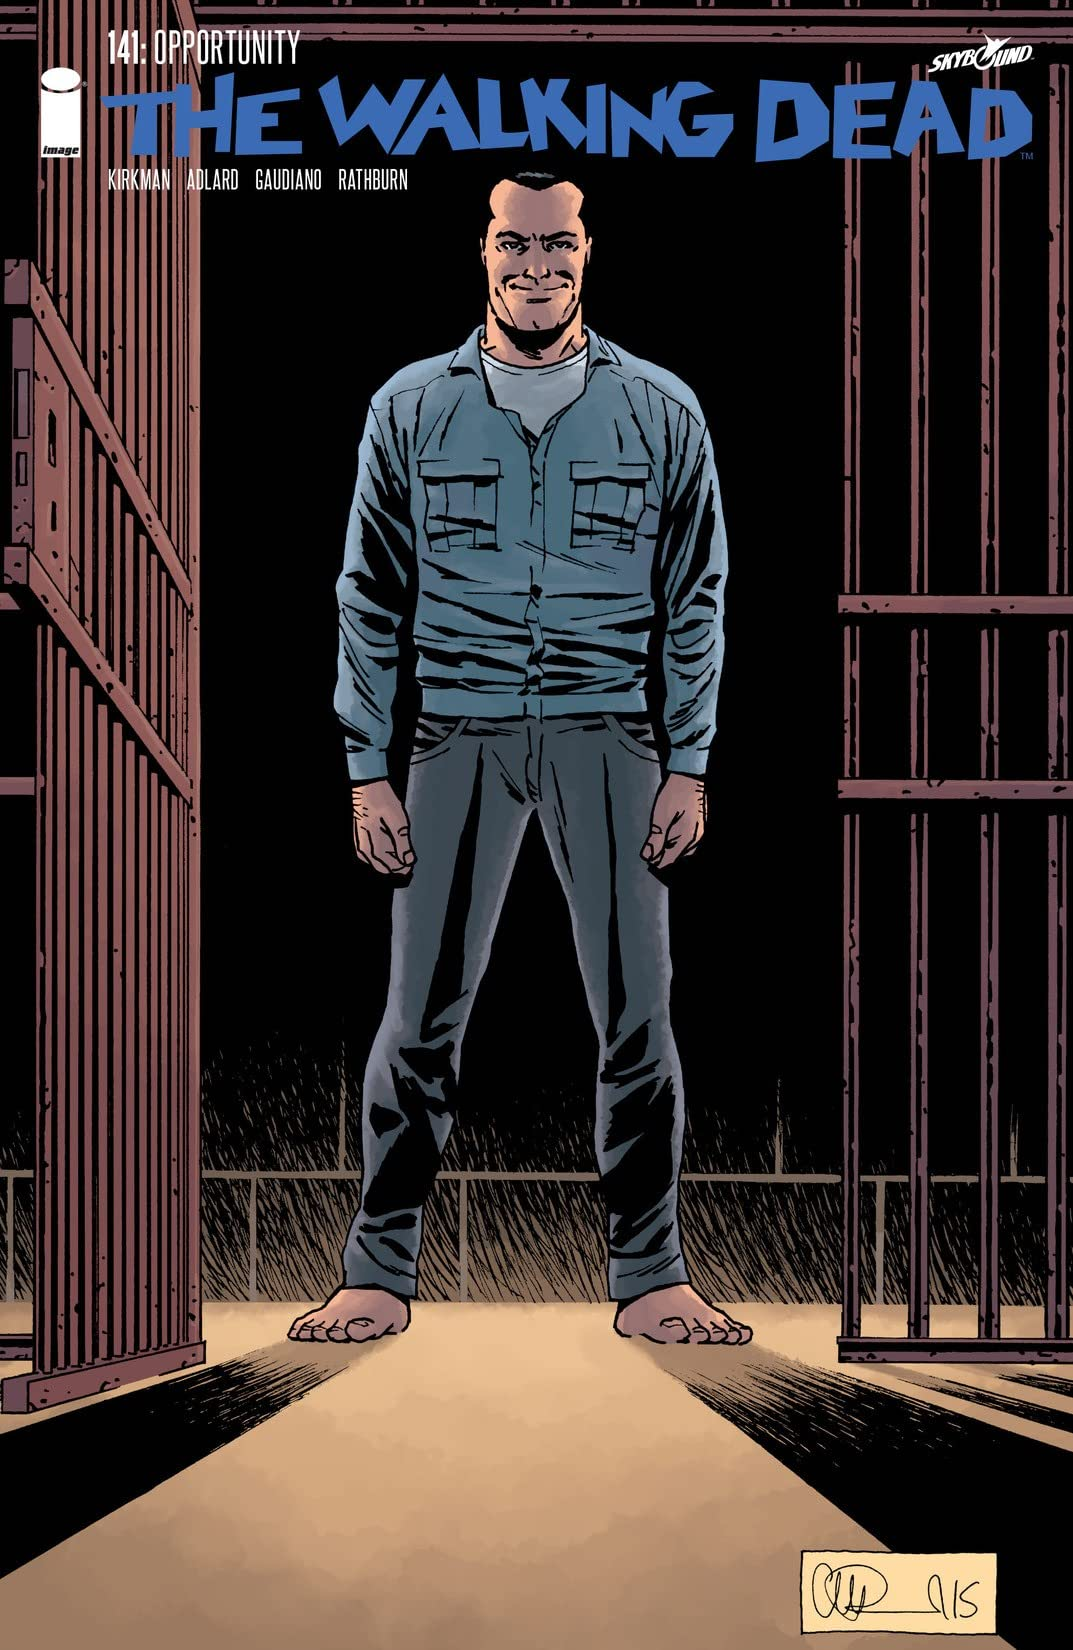 The Walking Dead #141